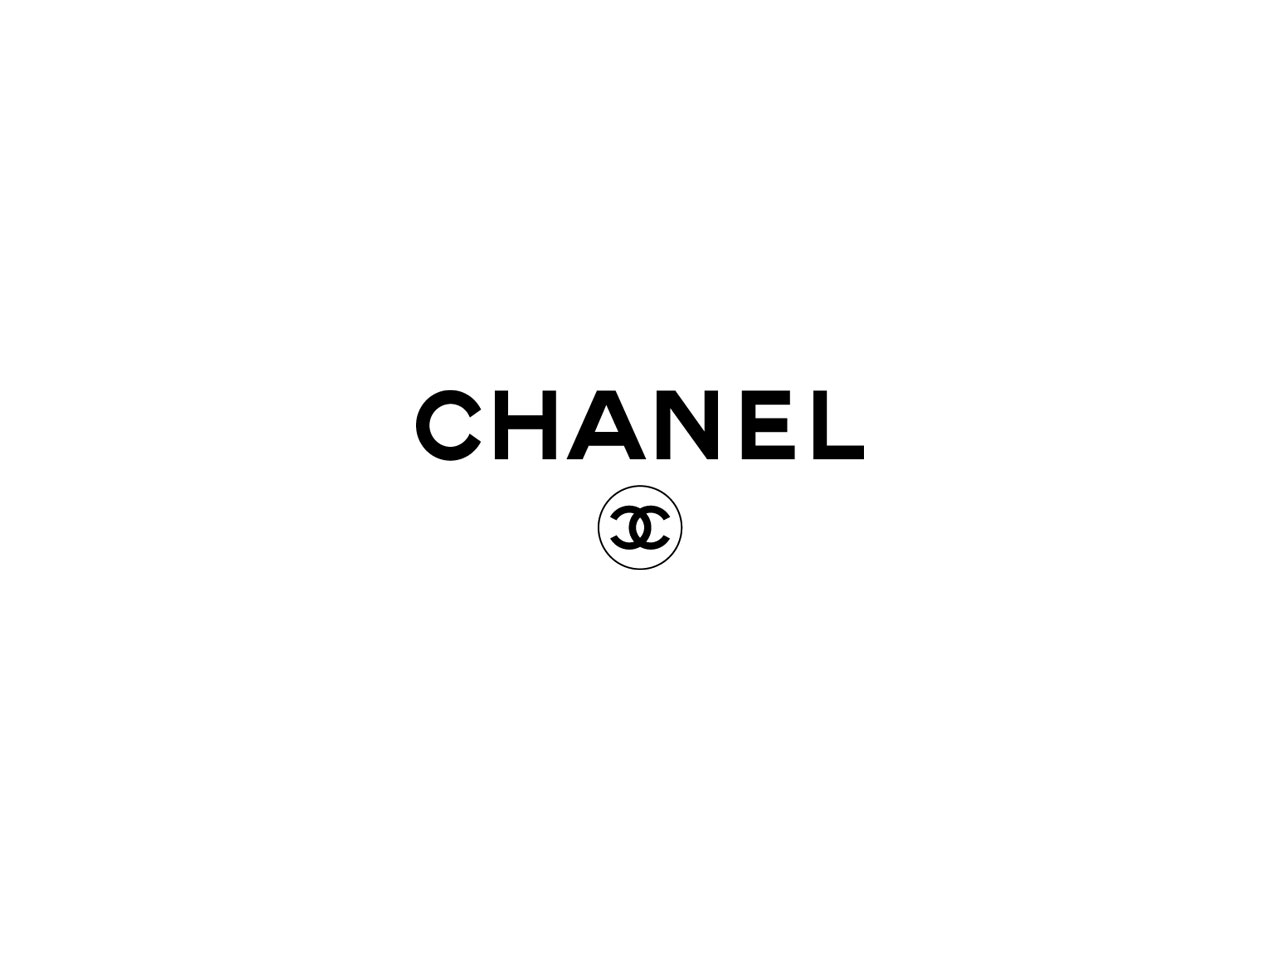 Coco Chanel Logo Wallpaper 1280x960